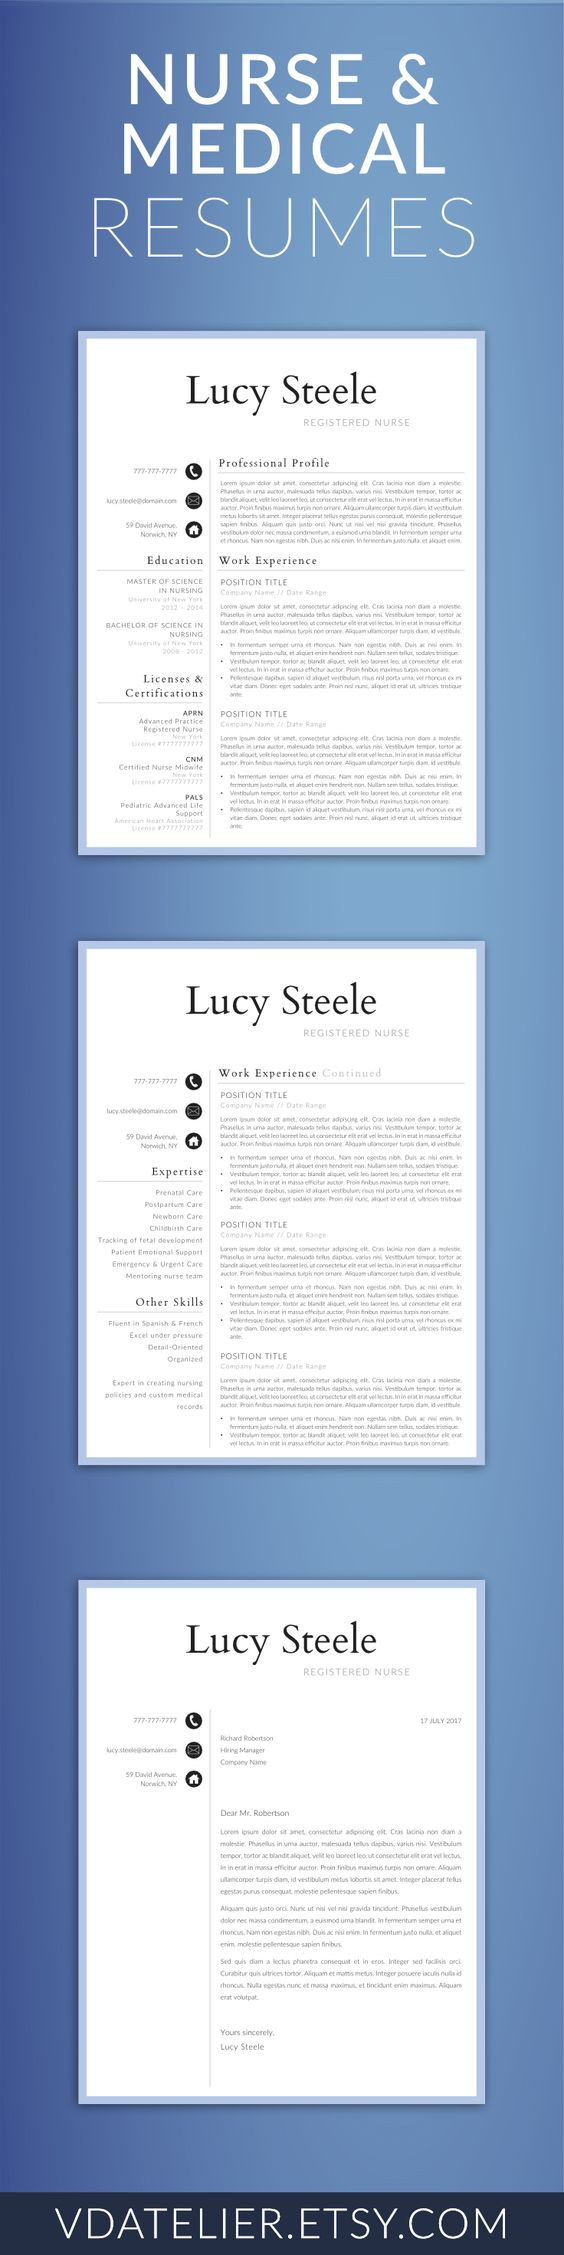 Advanced Practice Nurse Sample Resume Stunning Nurse Resume Template For Word & Pages Landeddesignstudio .